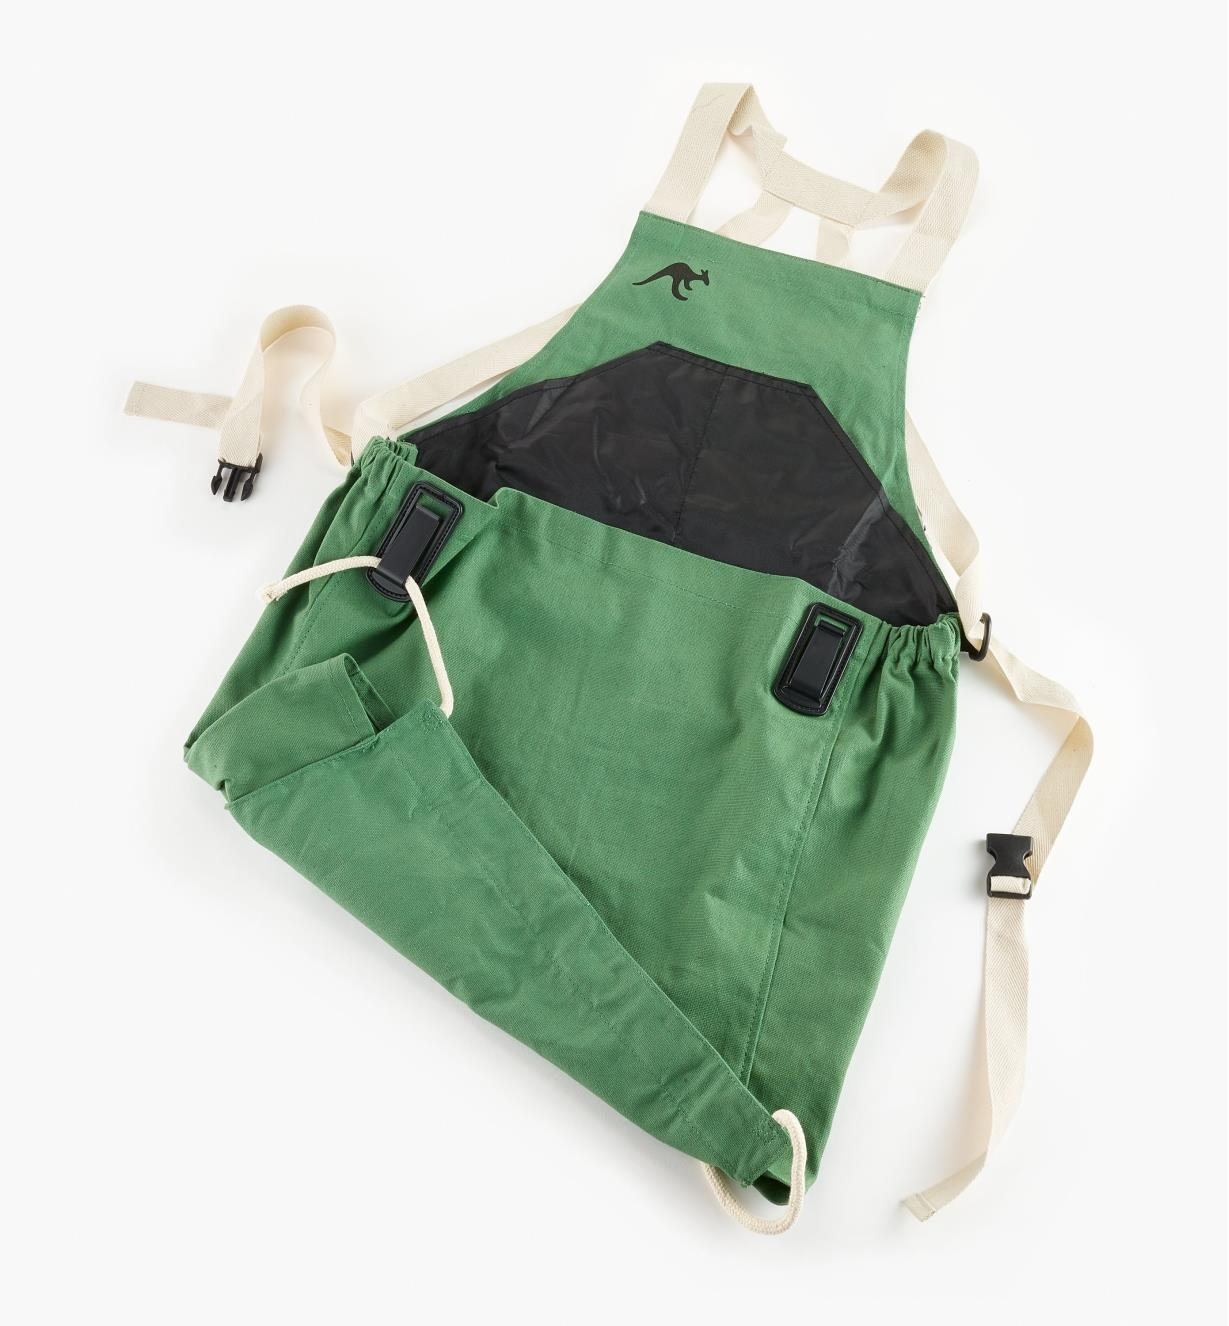 EP232 - Kangaroo Pocket Apron, Green